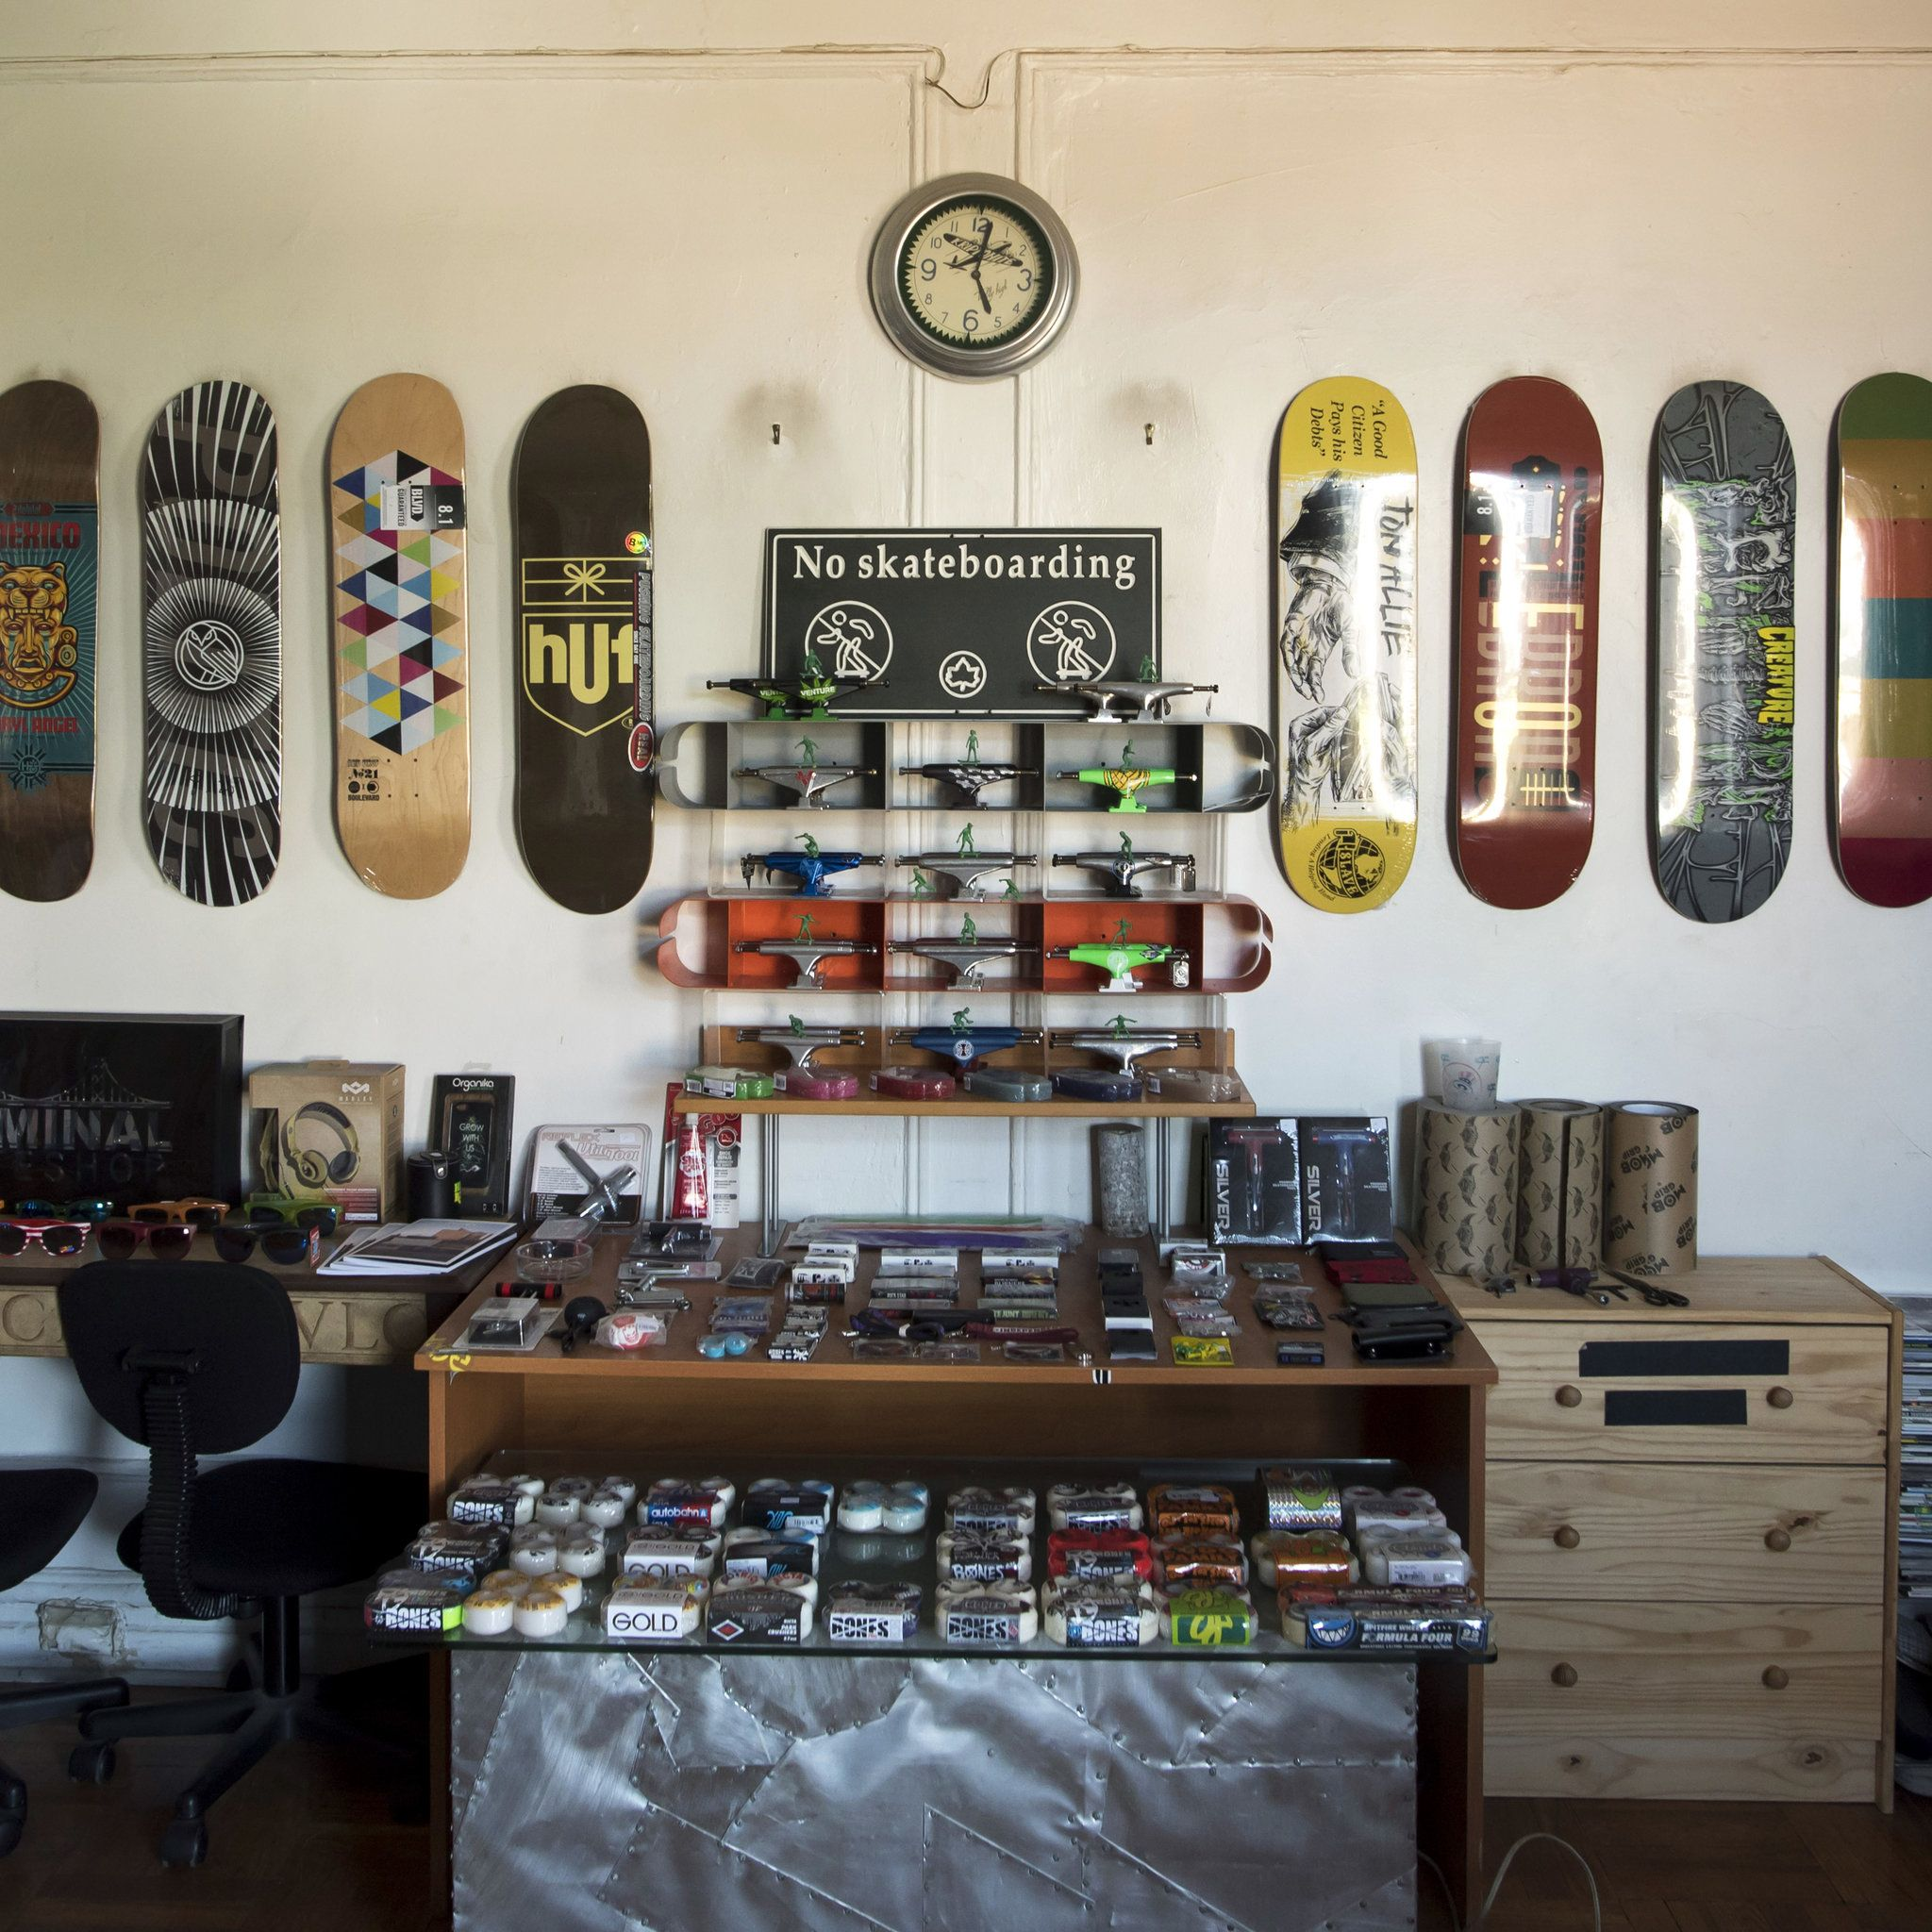 how to hang skateboard deck on wall vertically